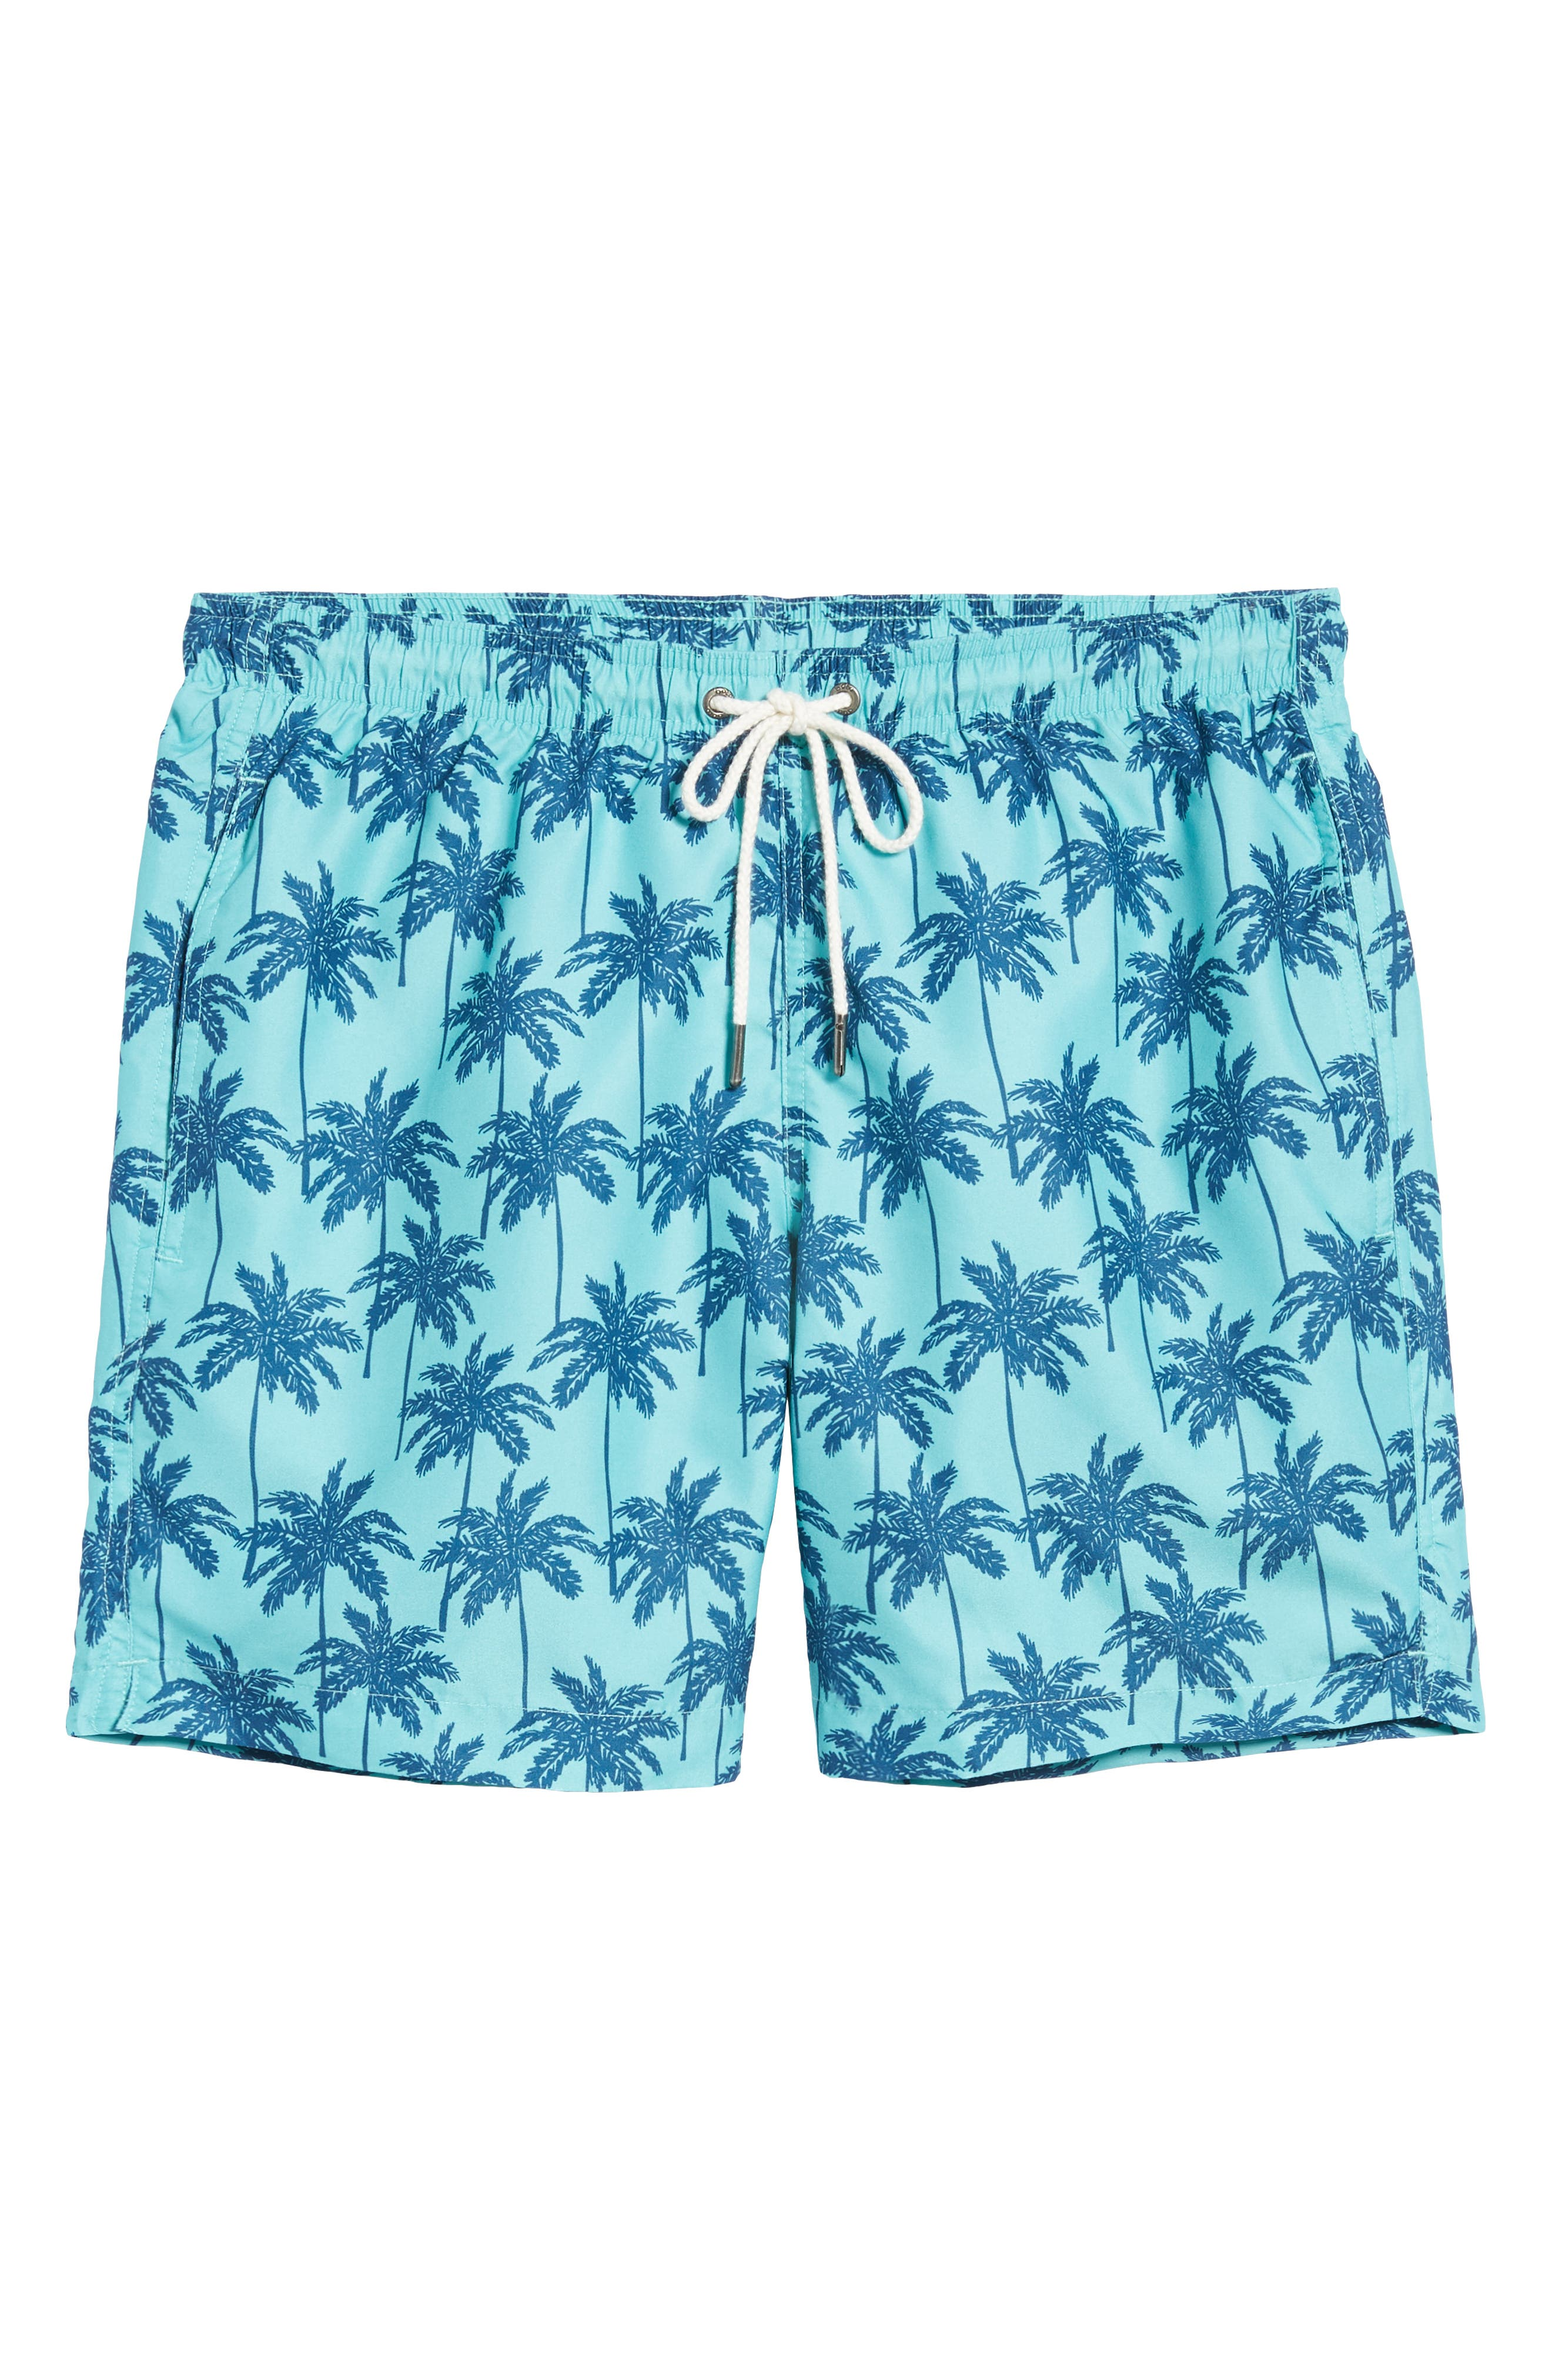 Cabo Palm Trees 6.5 Inch Swim Trunks,                             Alternate thumbnail 6, color,                             443